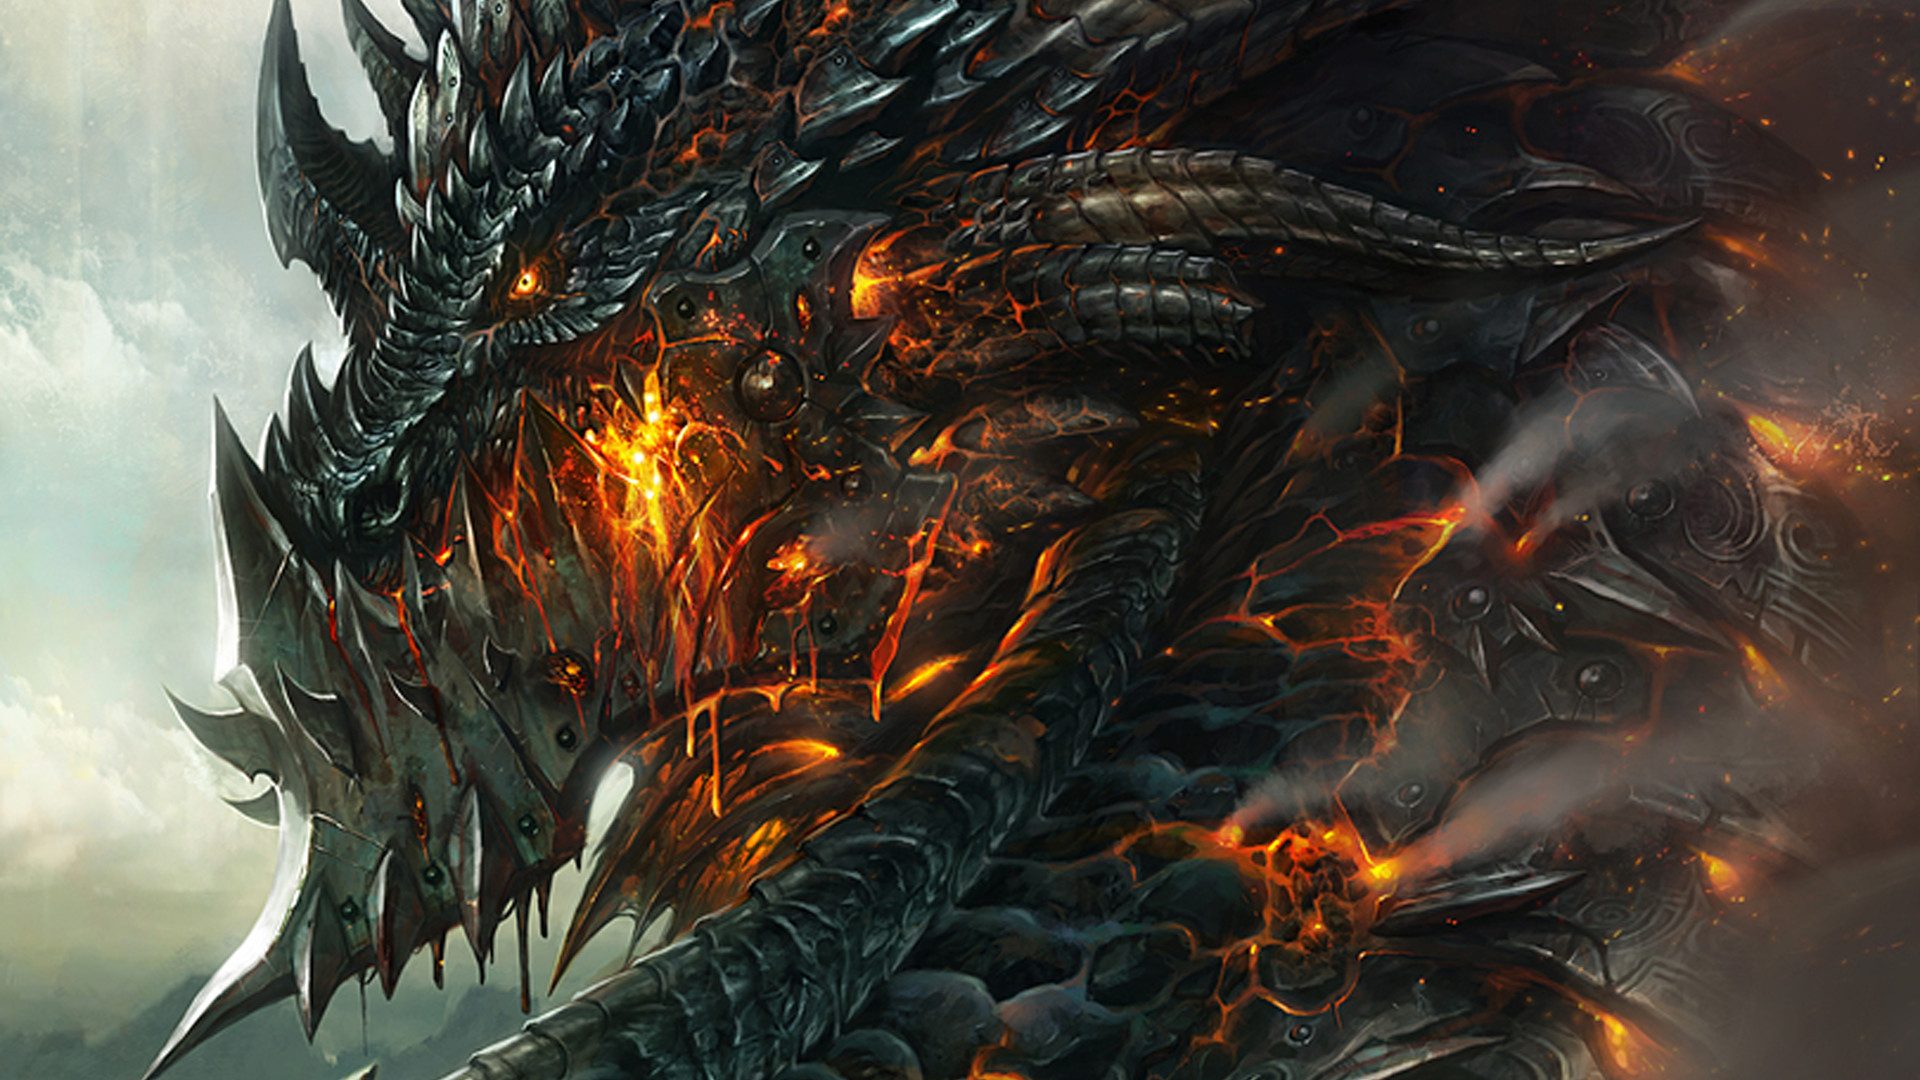 Res: 1920x1080, Dragon Wallpapers 5 - 1920 X 1080